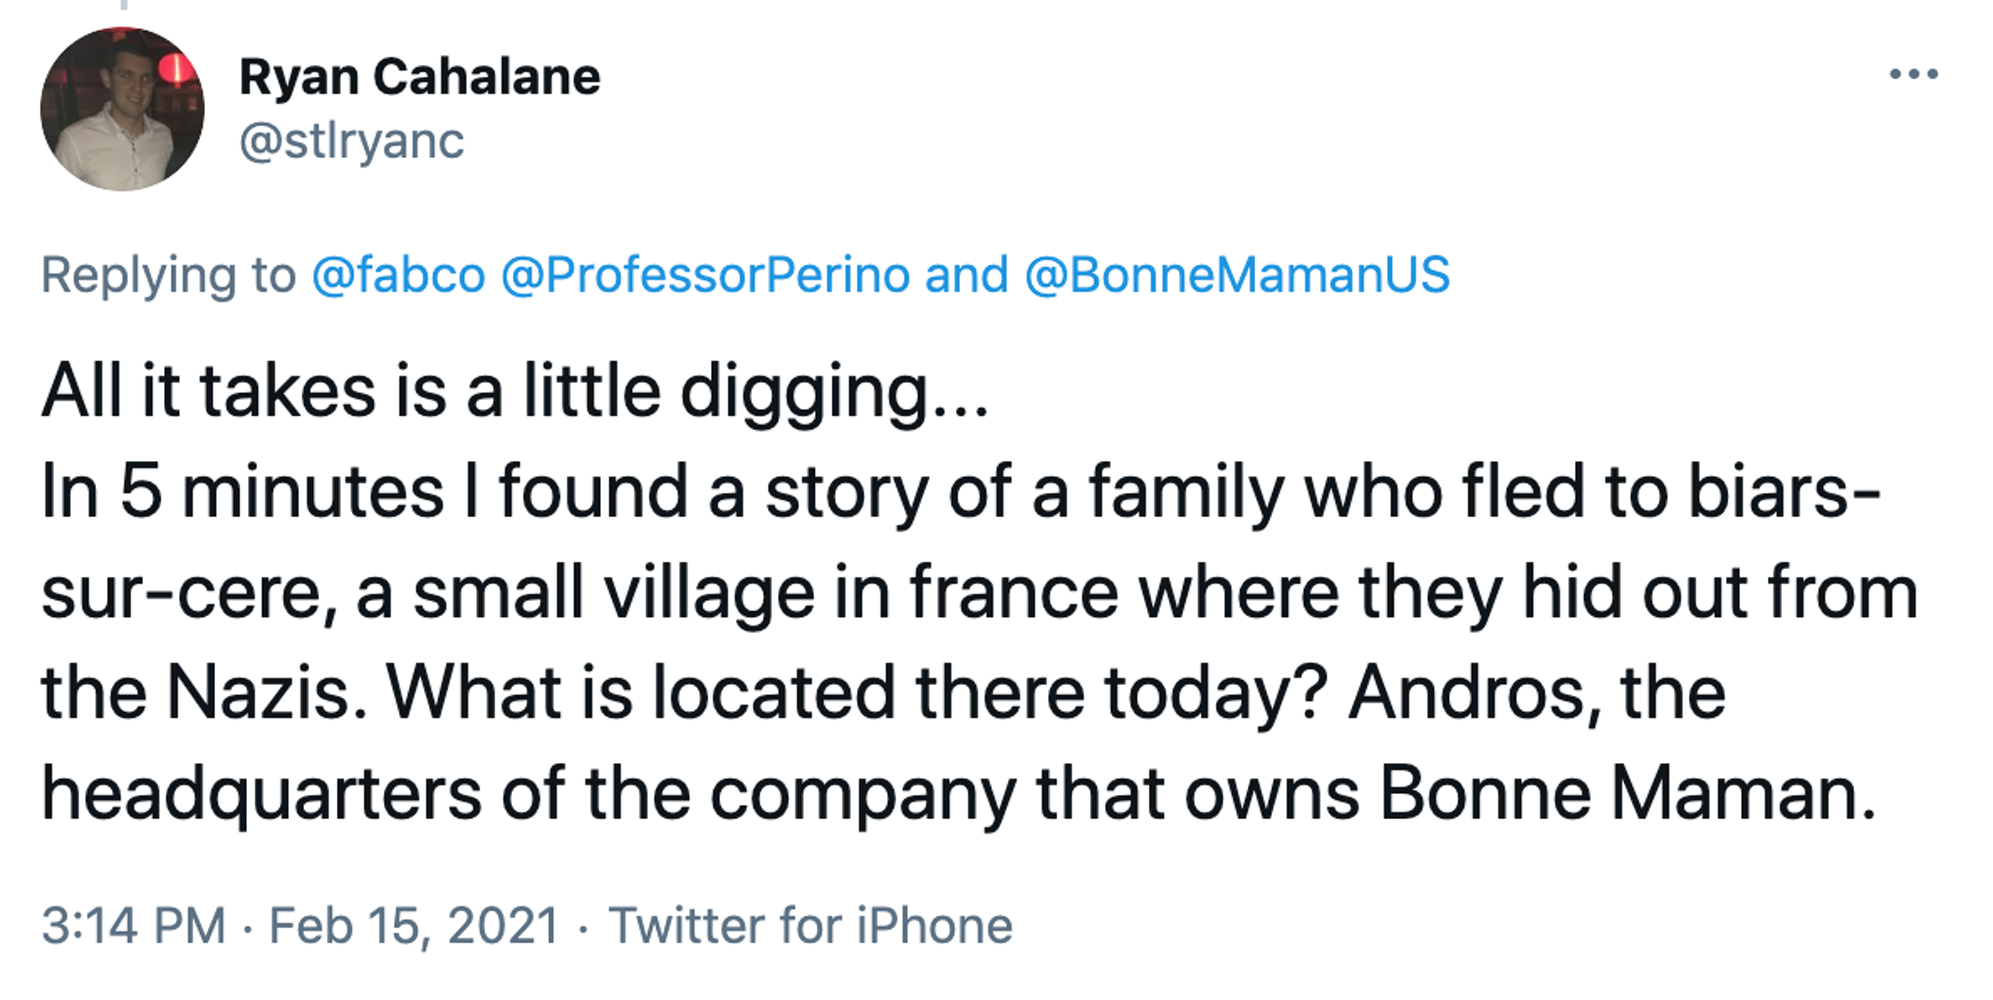 All it takes is a little digging... In 5 minutes I found a story of a family who fled to biars-sur-cere, a small village in france where they hid out from the Nazis. What is located there today? Andros, the headquarters of the company that owns Bonne Maman.